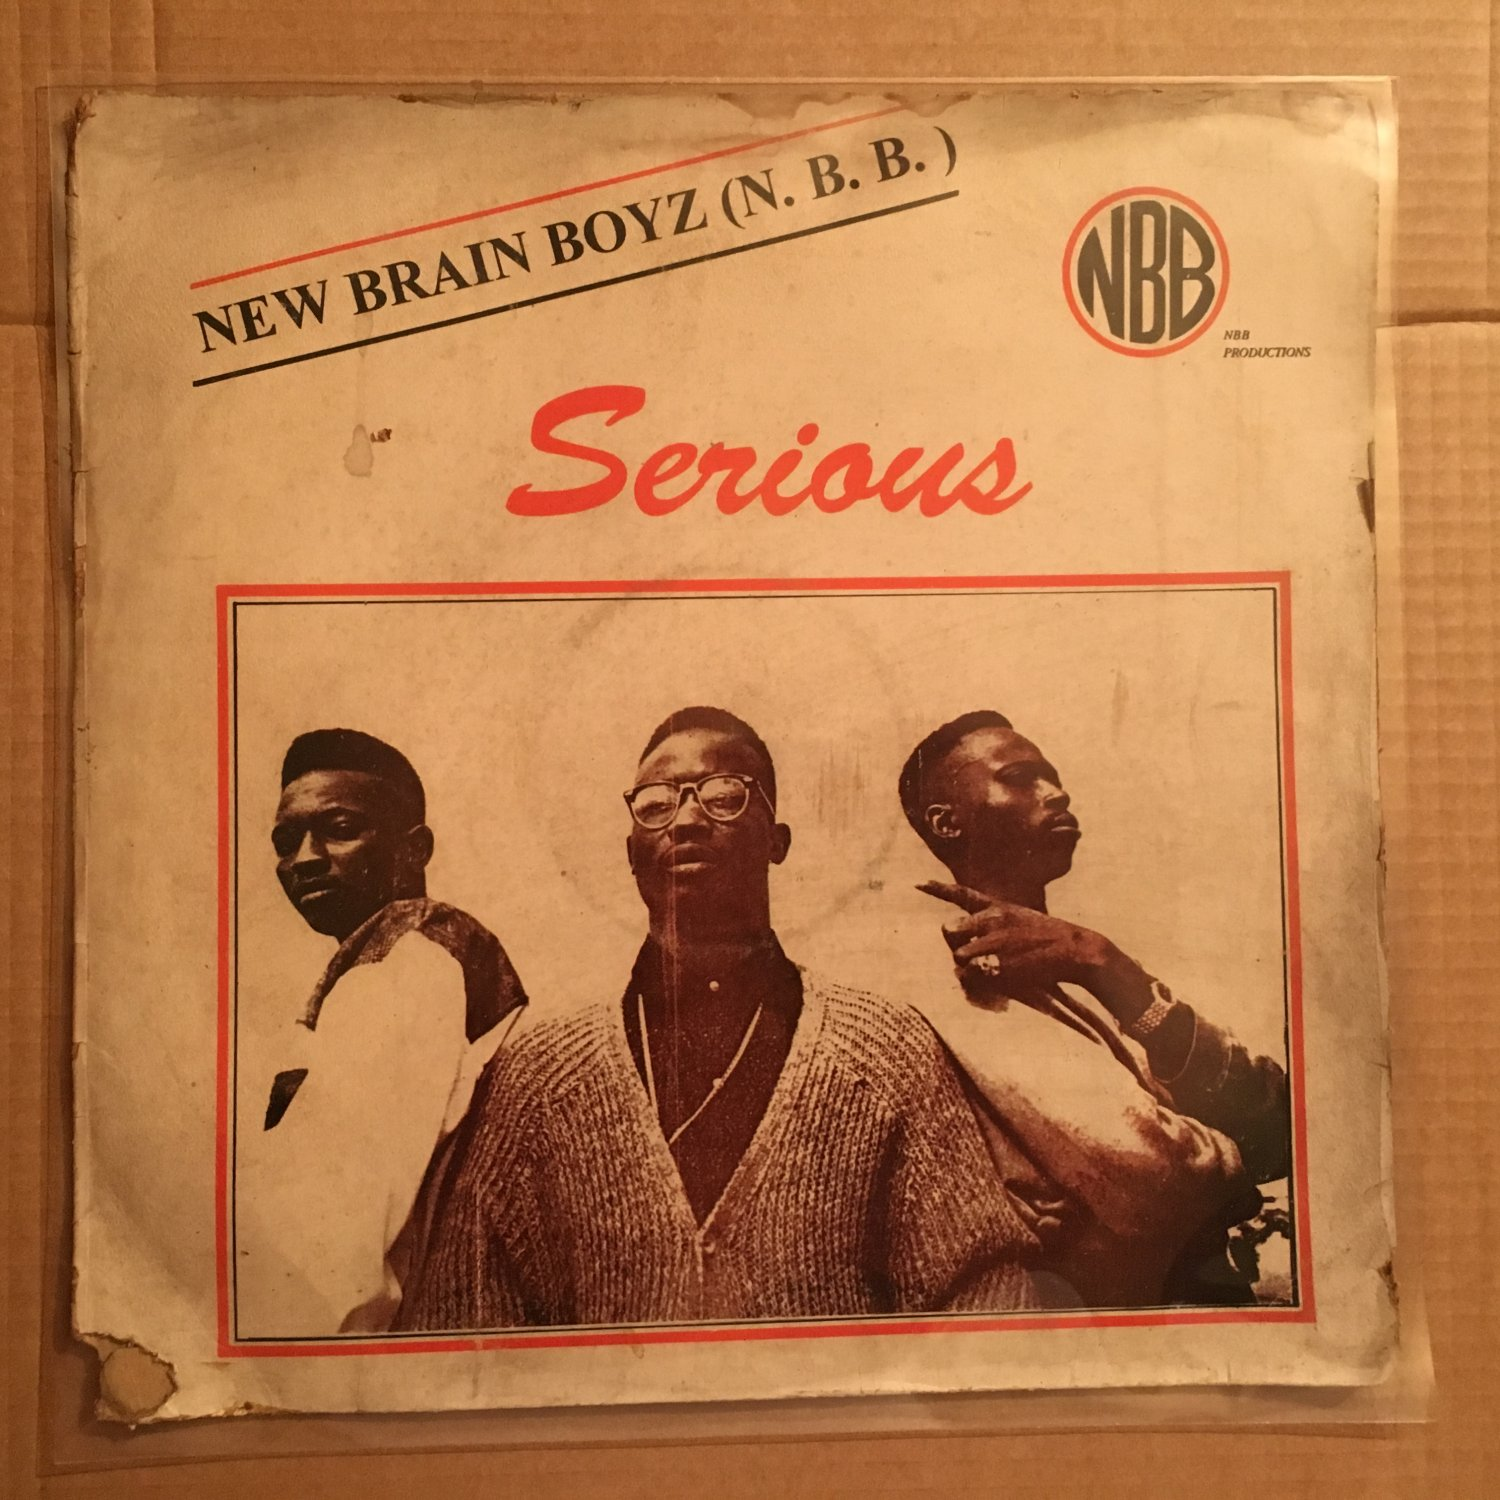 NEW BRAIN BOYZ LP serious NIGERIA RAP R&B NEW SOUL BOOGIE mp3 LISTEN